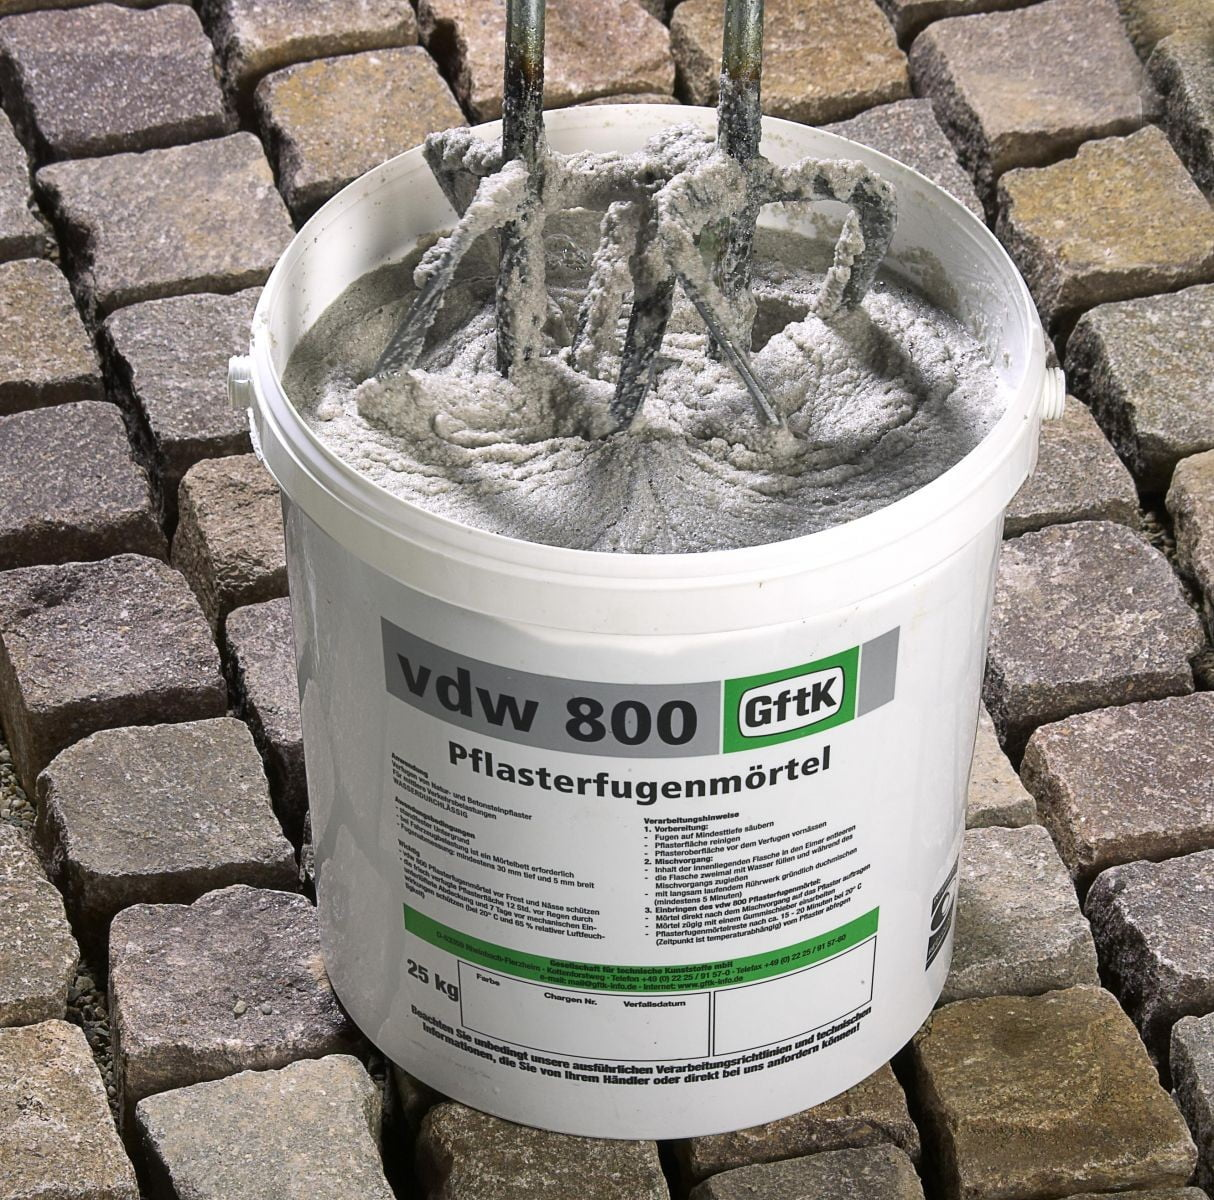 VDW is an epoxy paving jointing mortar